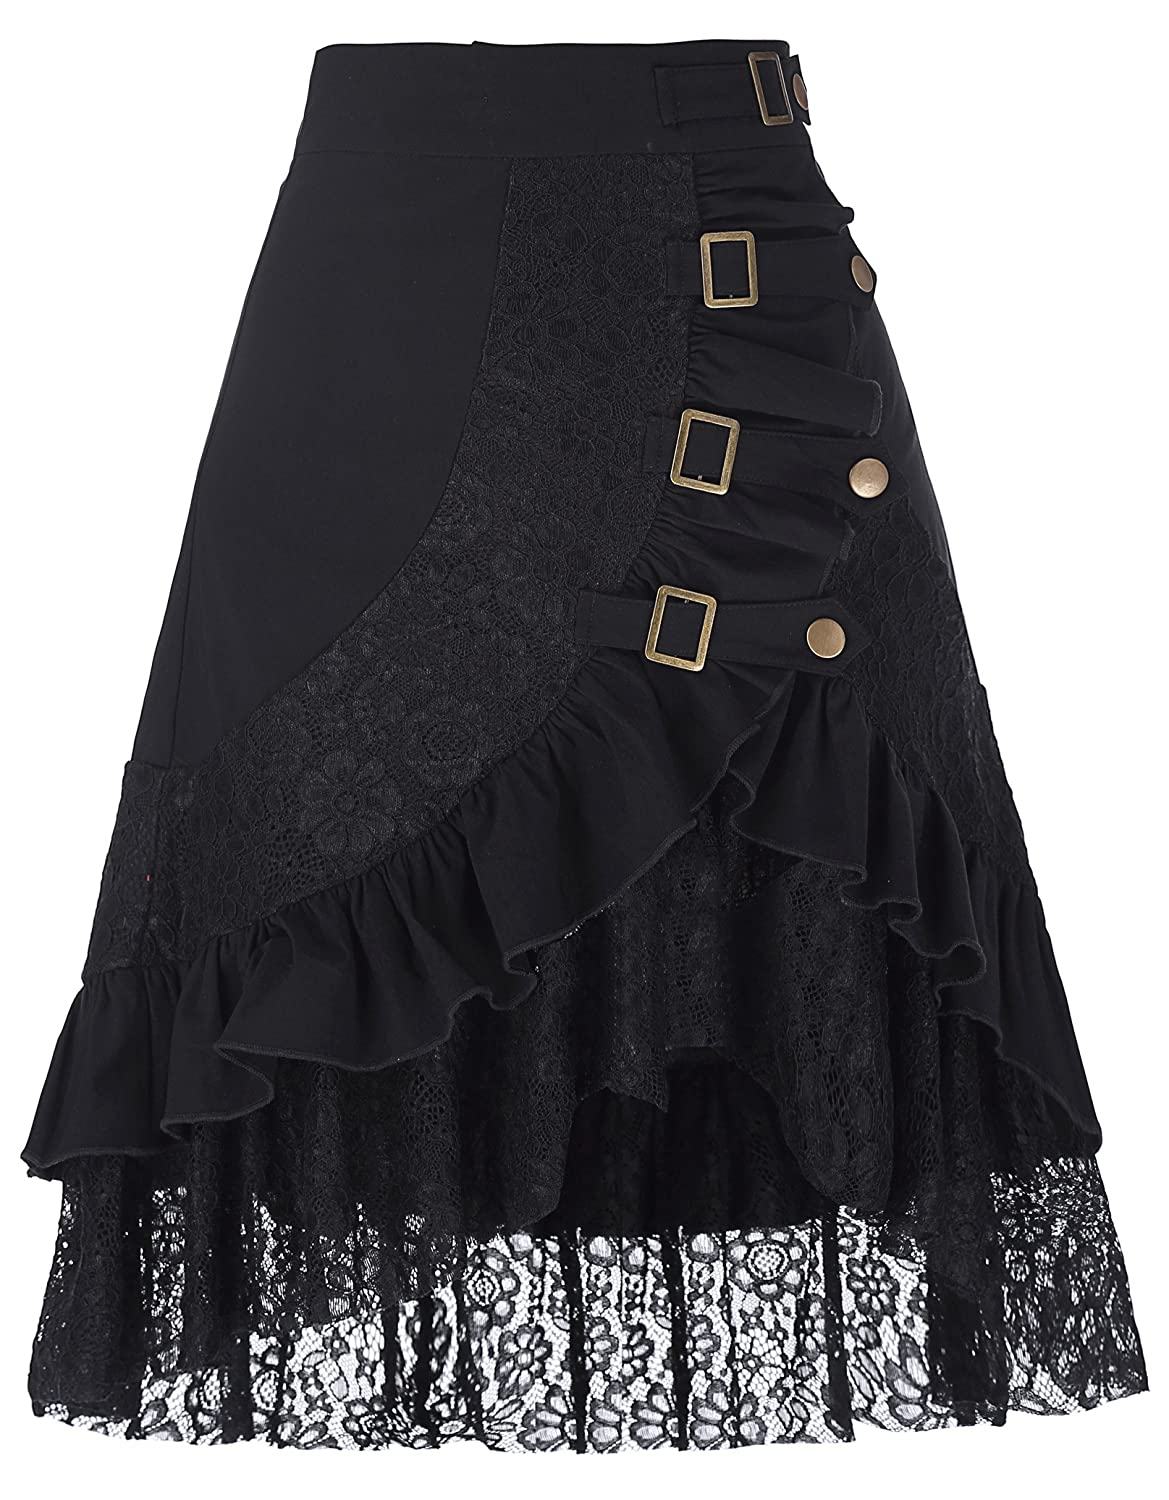 Belle Poque Women's Steampunk Gothic Skirt Gypsy Hippie High Stretchy Lace Skirts